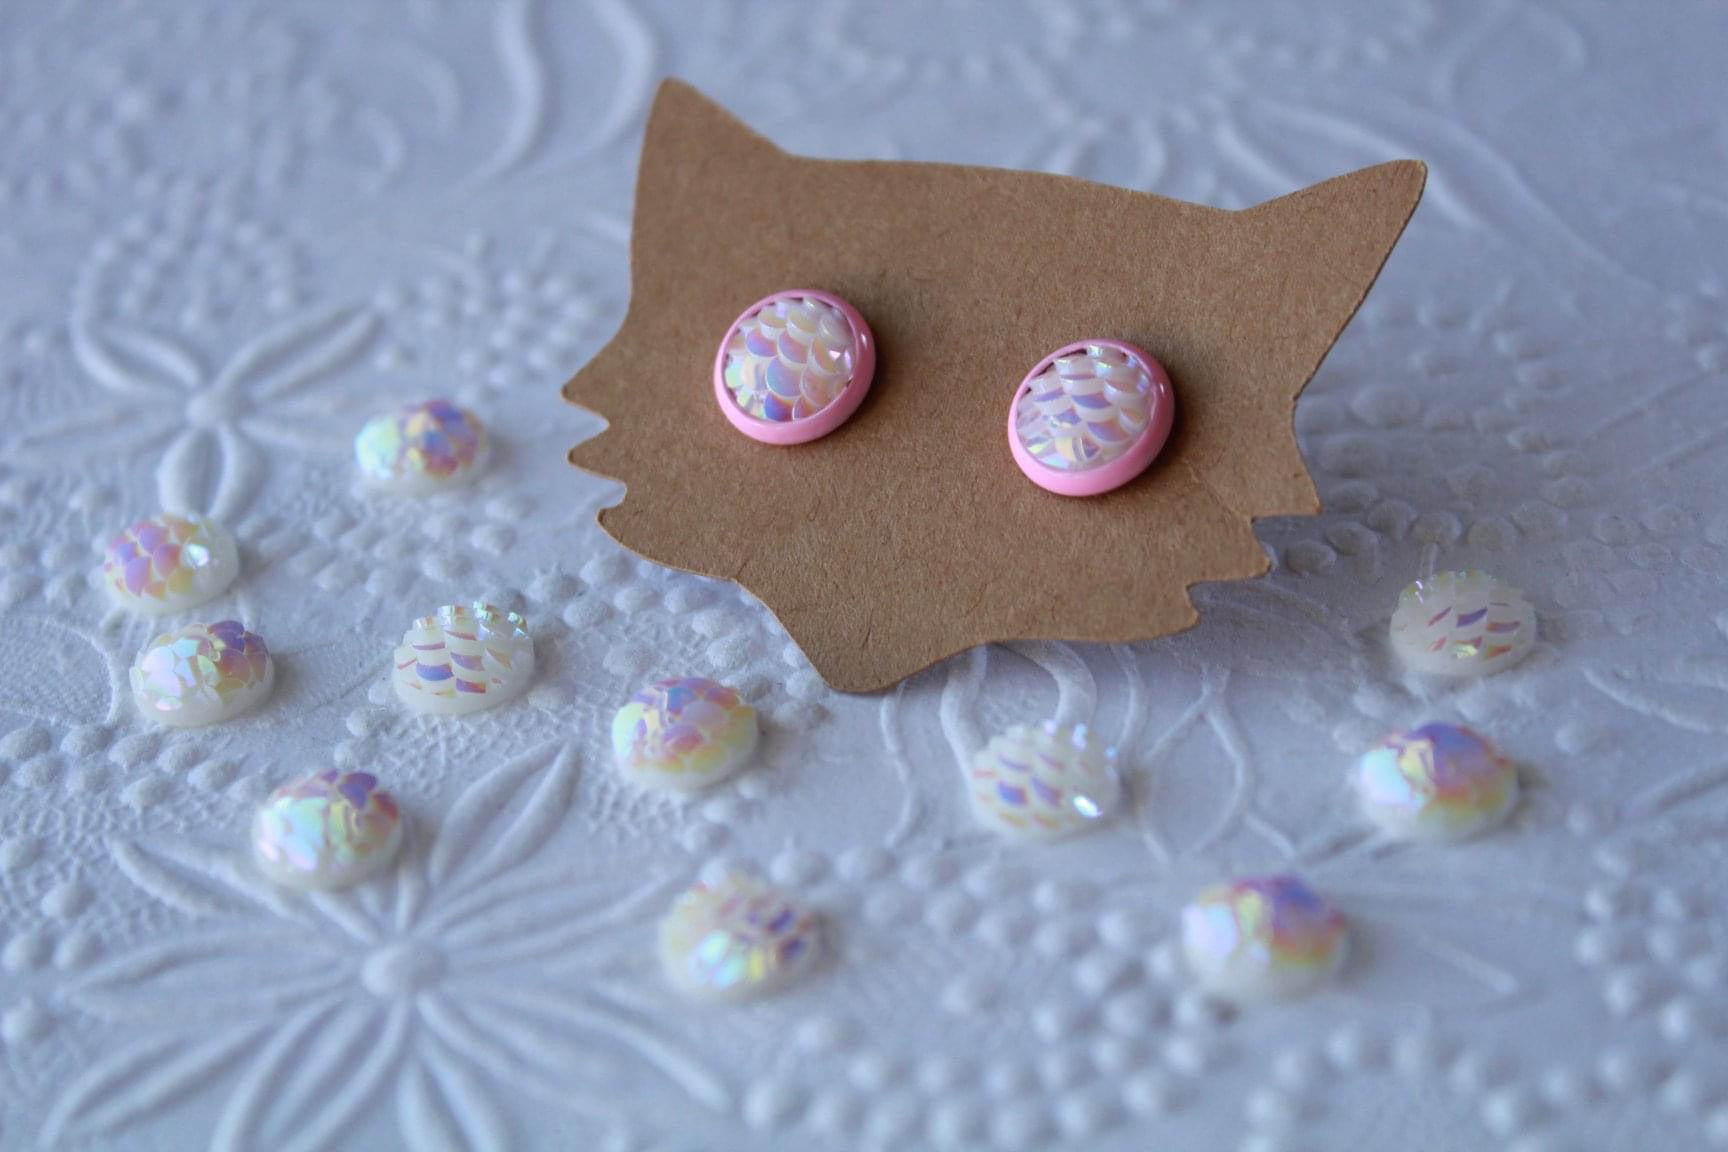 8mm White Mermaid/Pink Studs